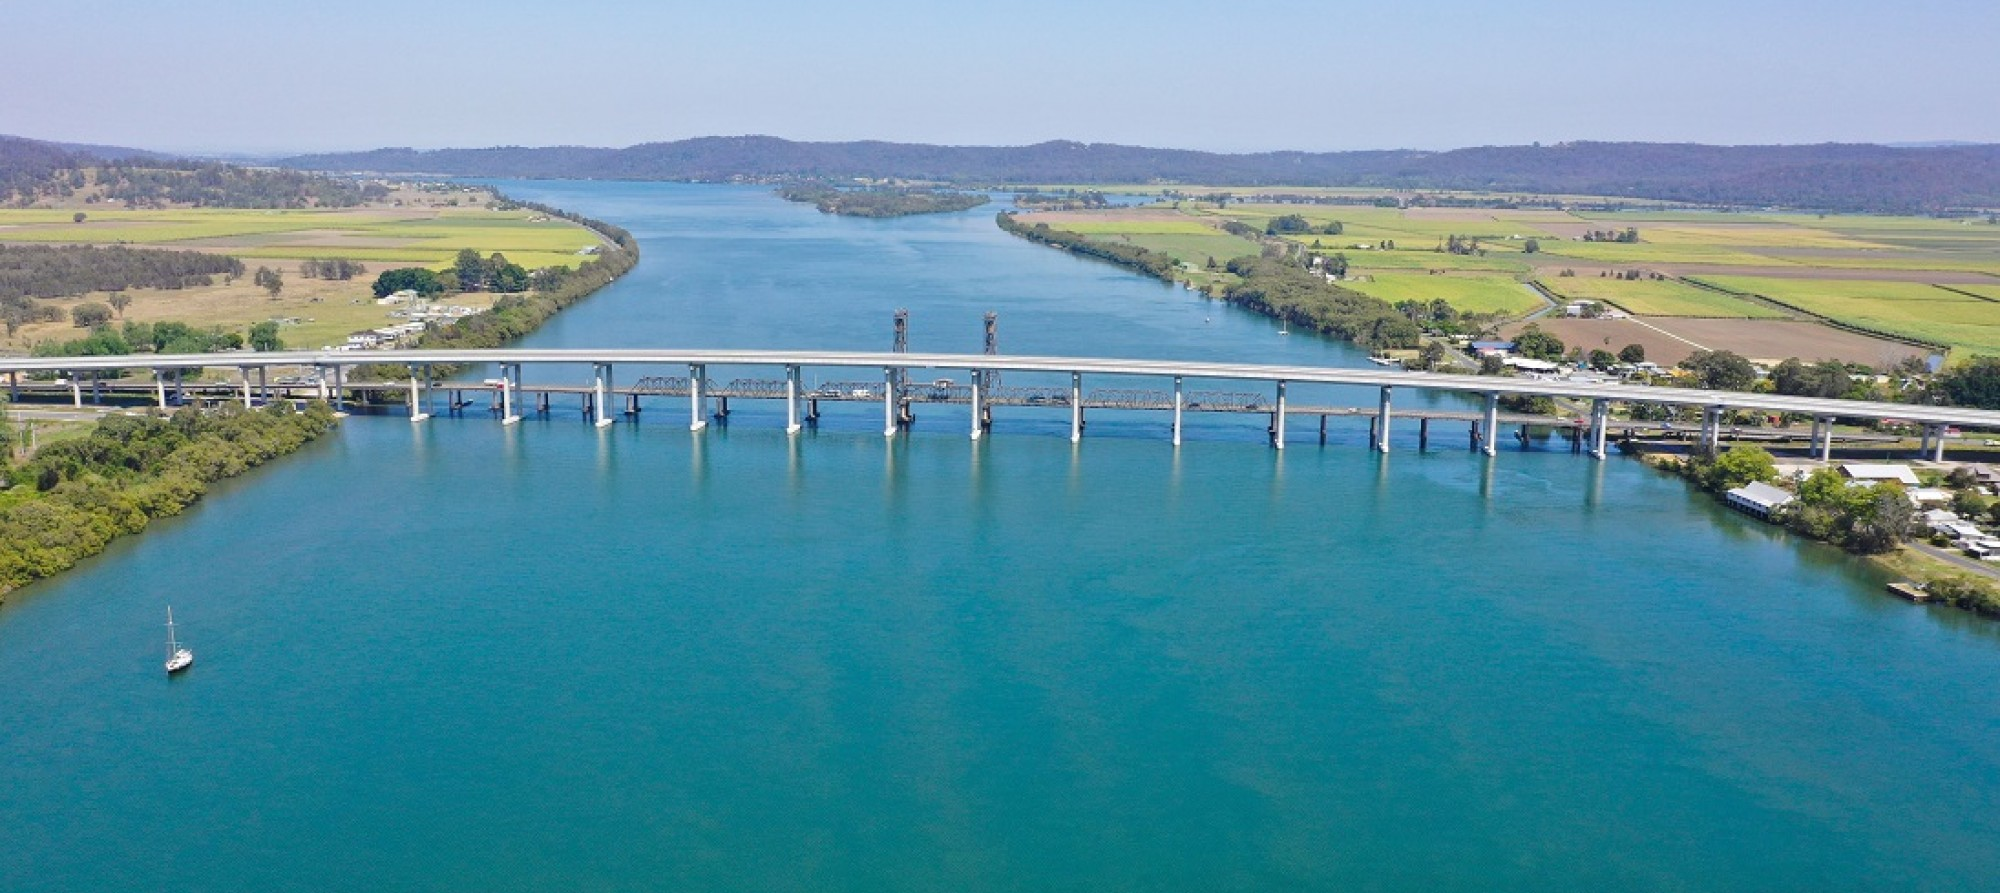 Aerial image of bridge over the Clarence River at Harwood